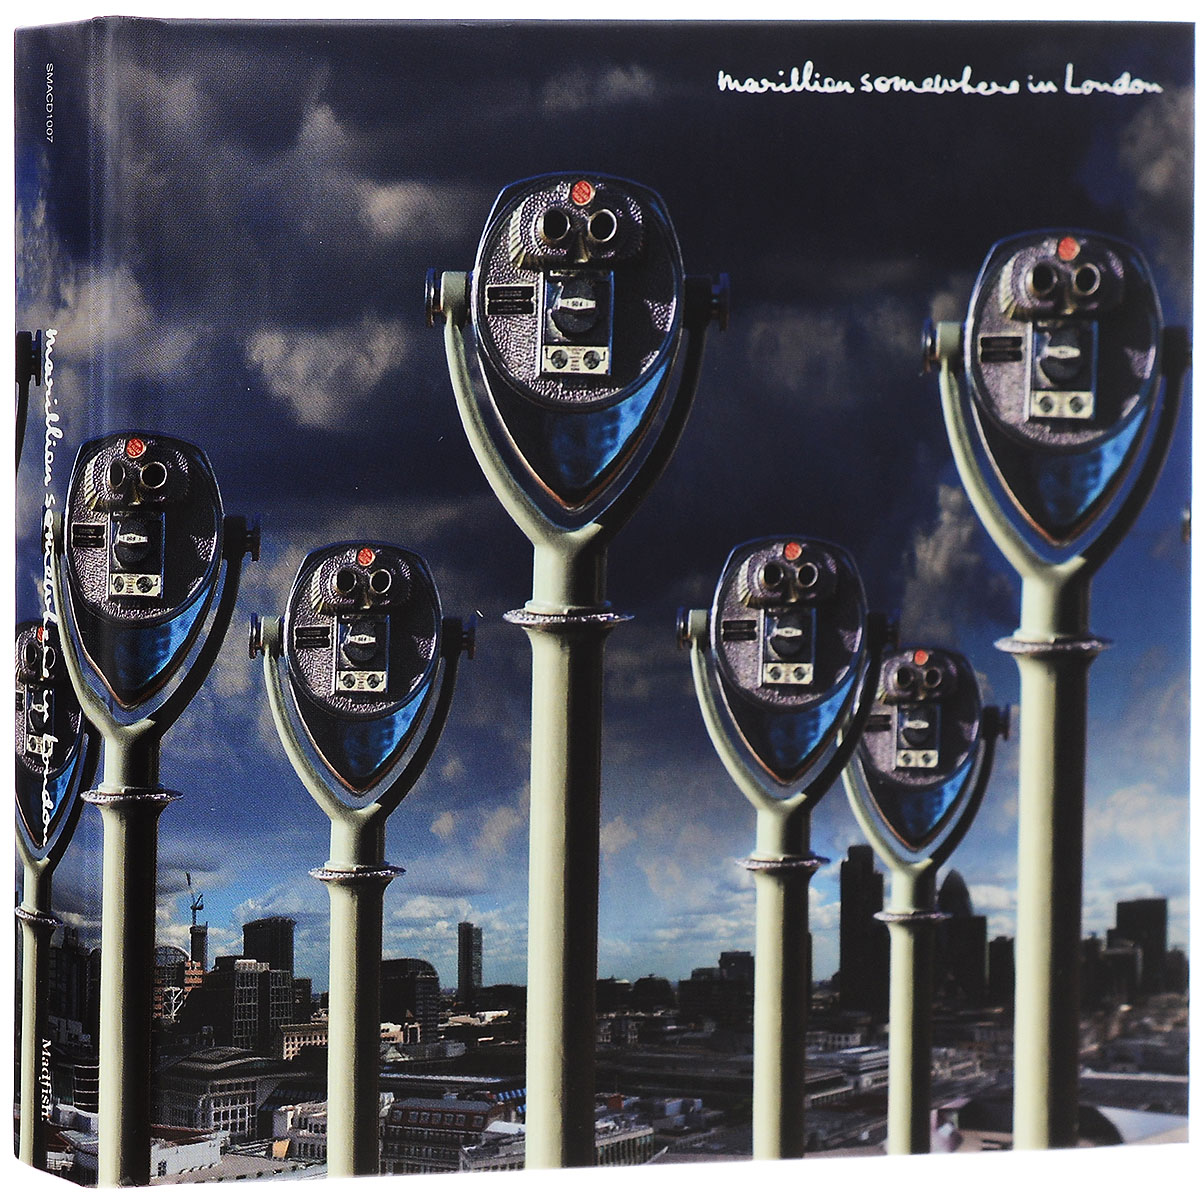 Marillion Marillion. Somewhere In London (2 CD + DVD) pantera pantera reinventing hell the best of pantera cd dvd